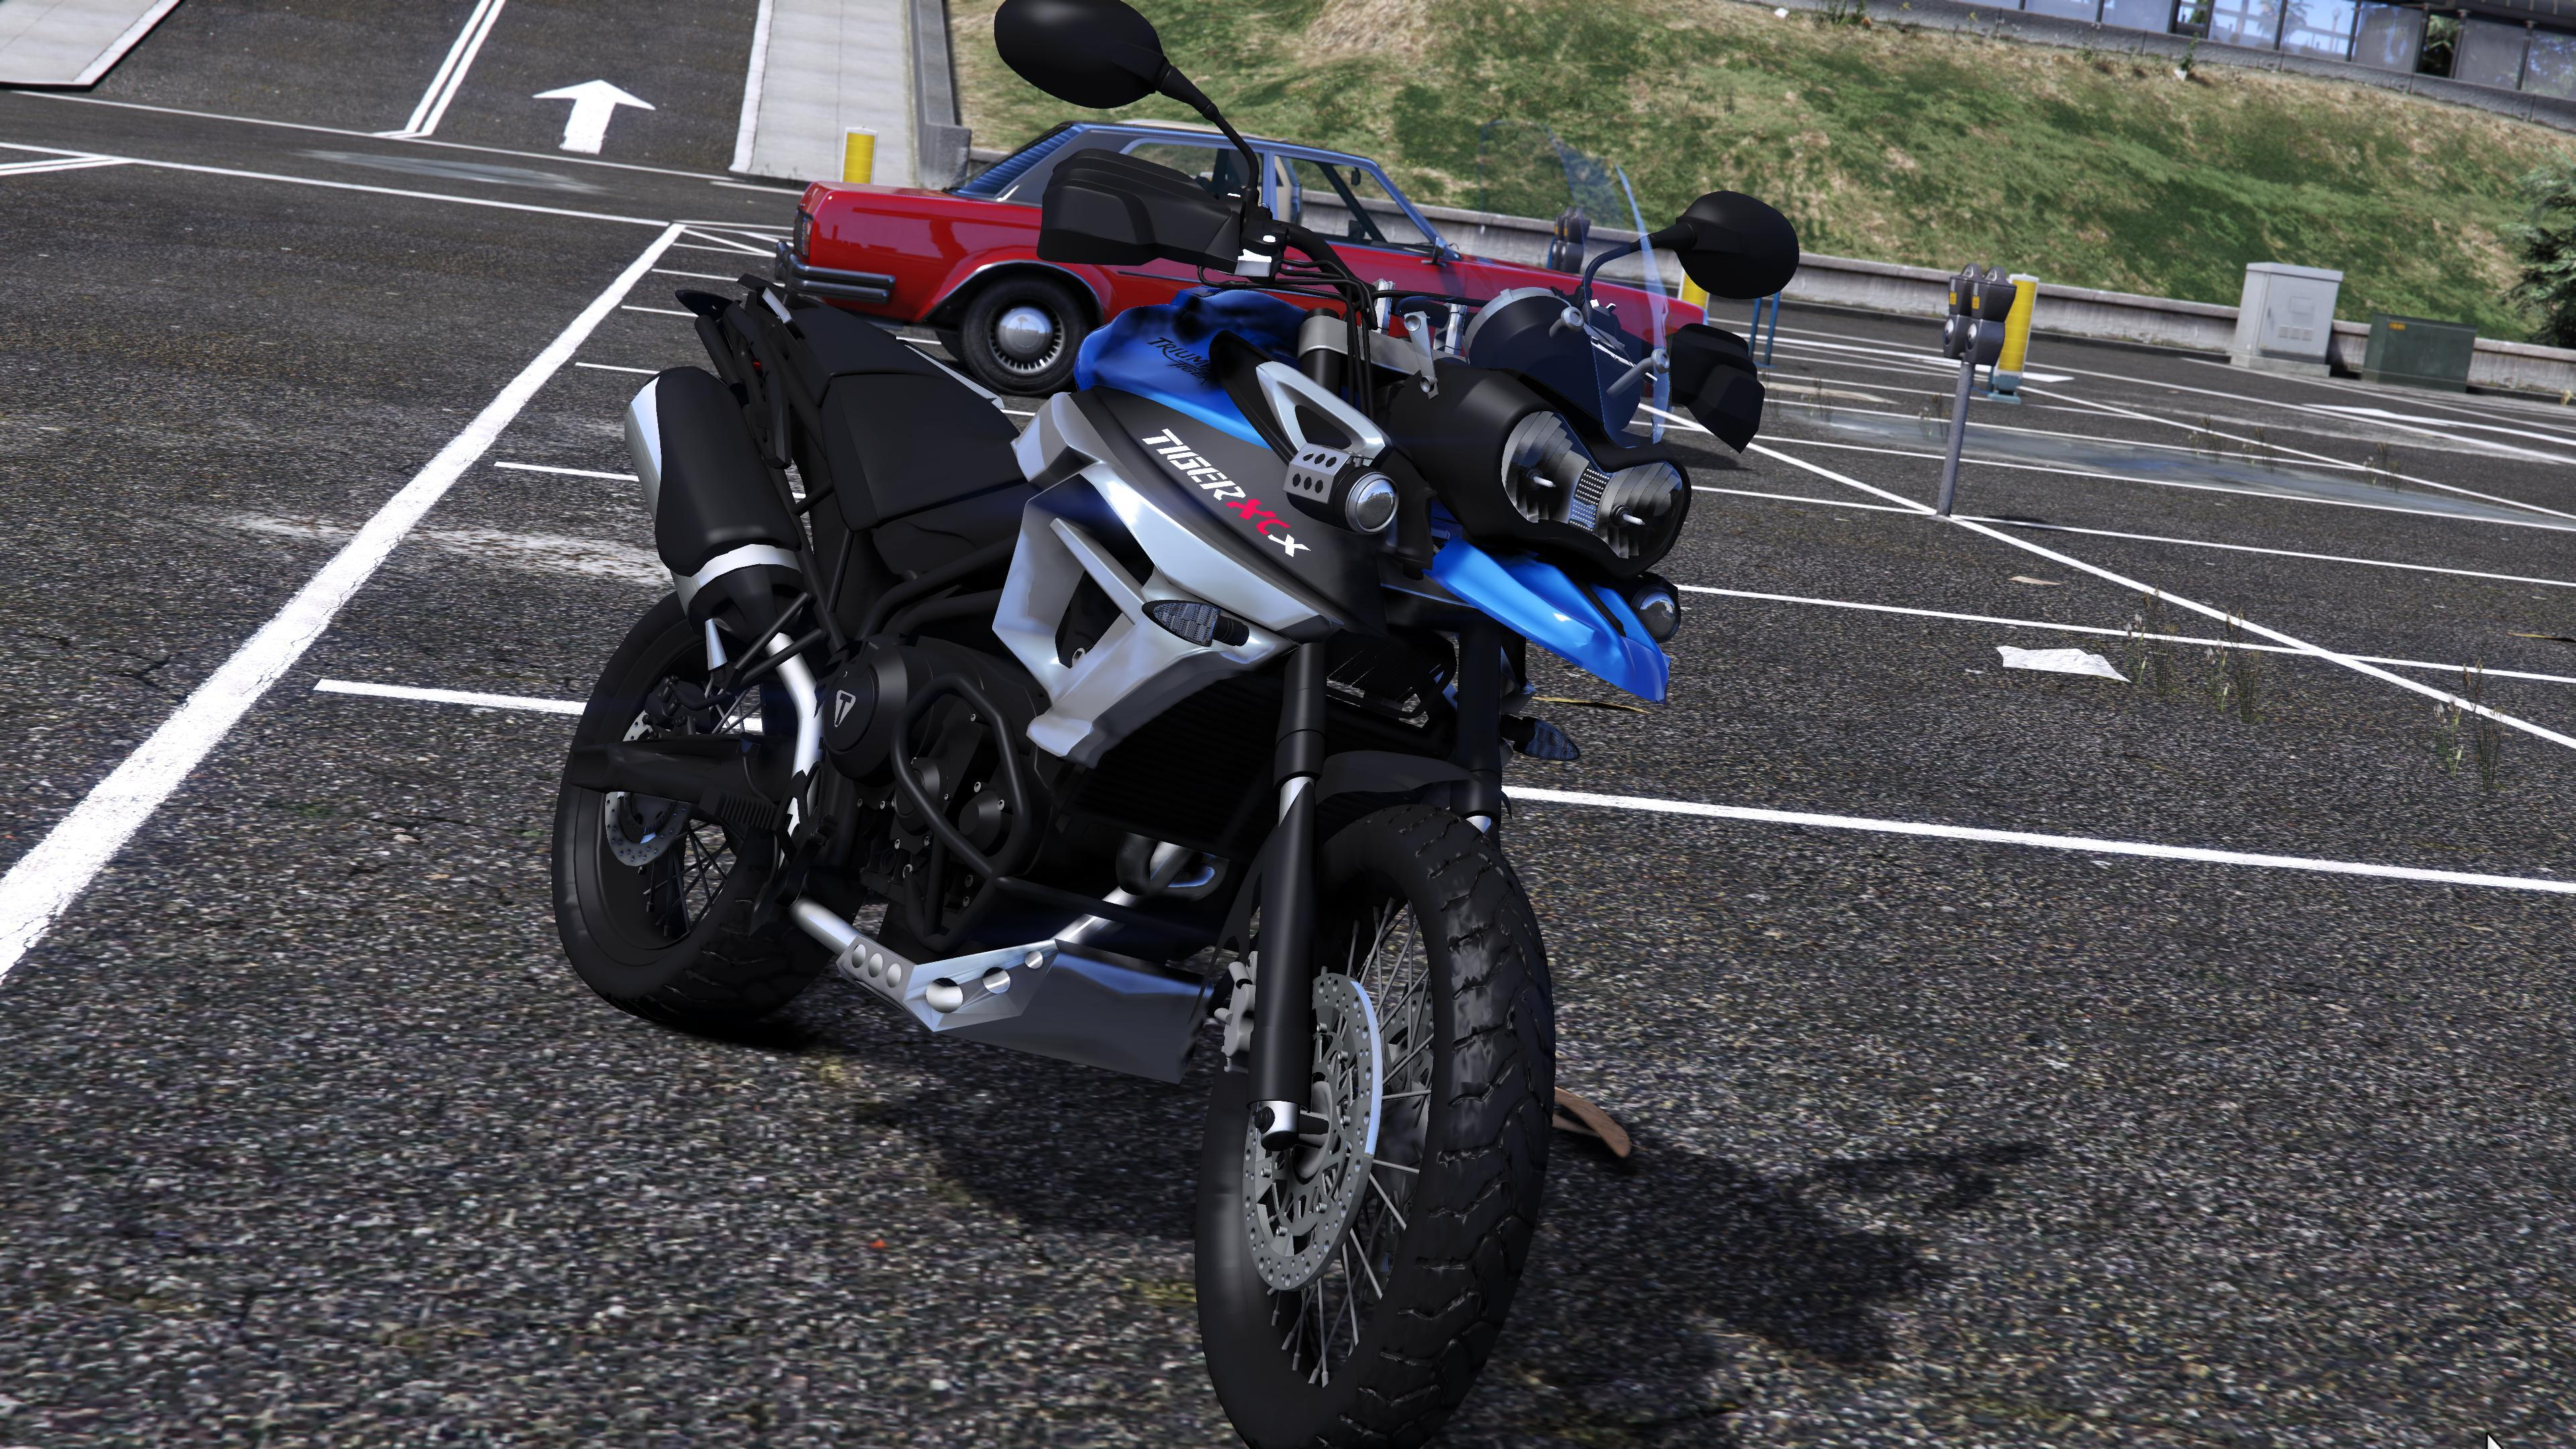 2015 triumph tiger 800 xcx v2 gta5. Black Bedroom Furniture Sets. Home Design Ideas